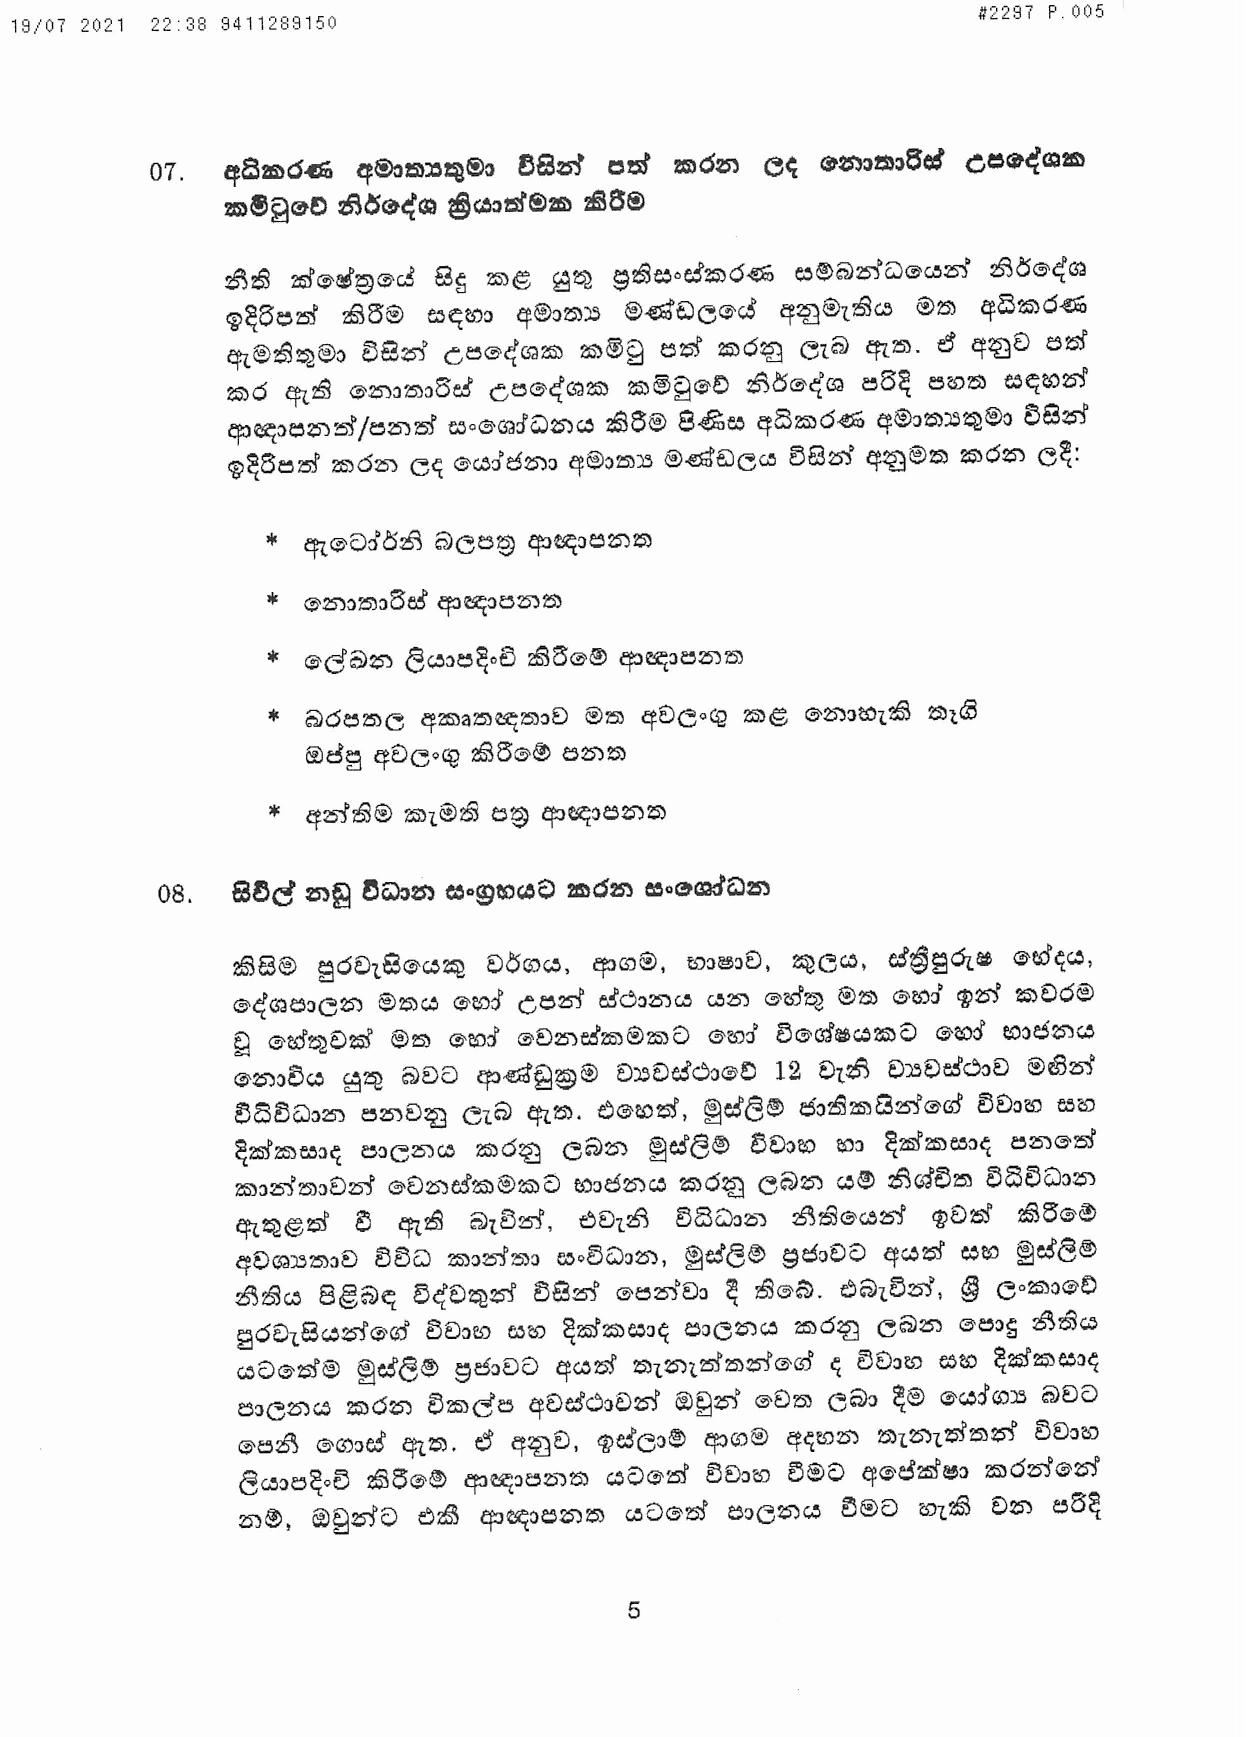 Cabinet Decision on 19.07.2021 page 005